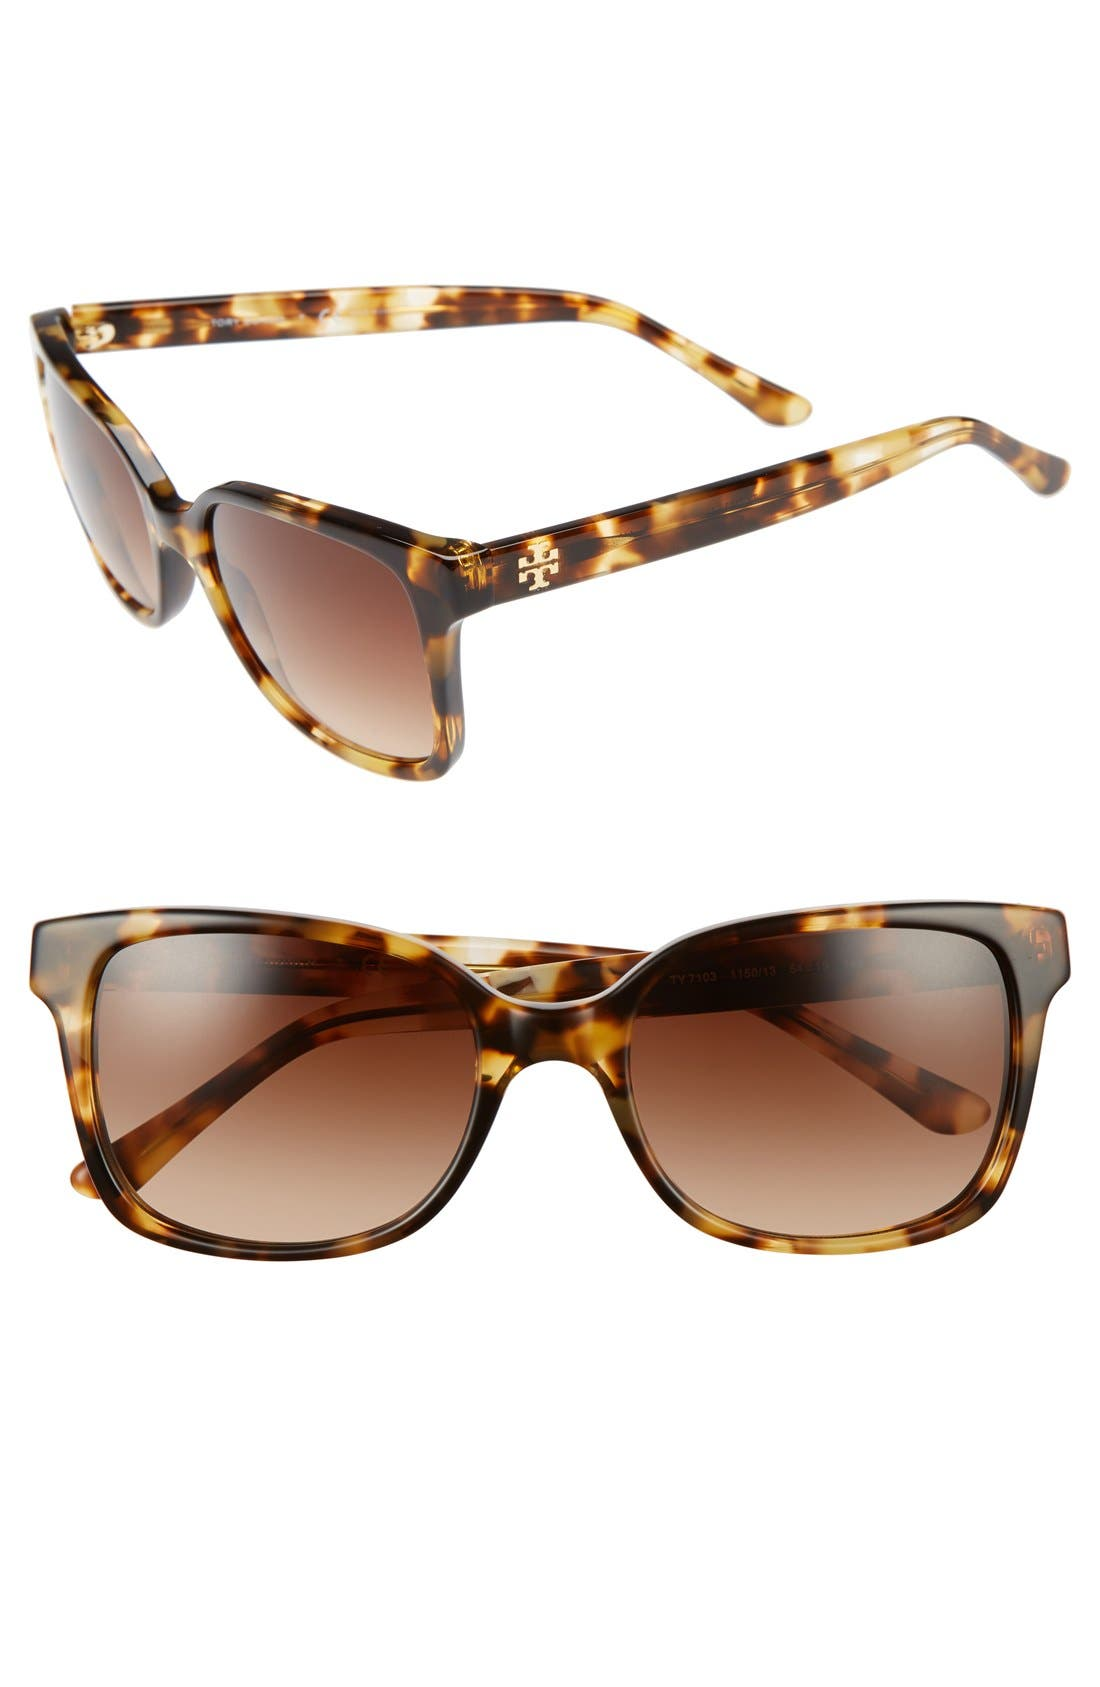 54mm Sunglasses,                         Main,                         color, Light Tortoise